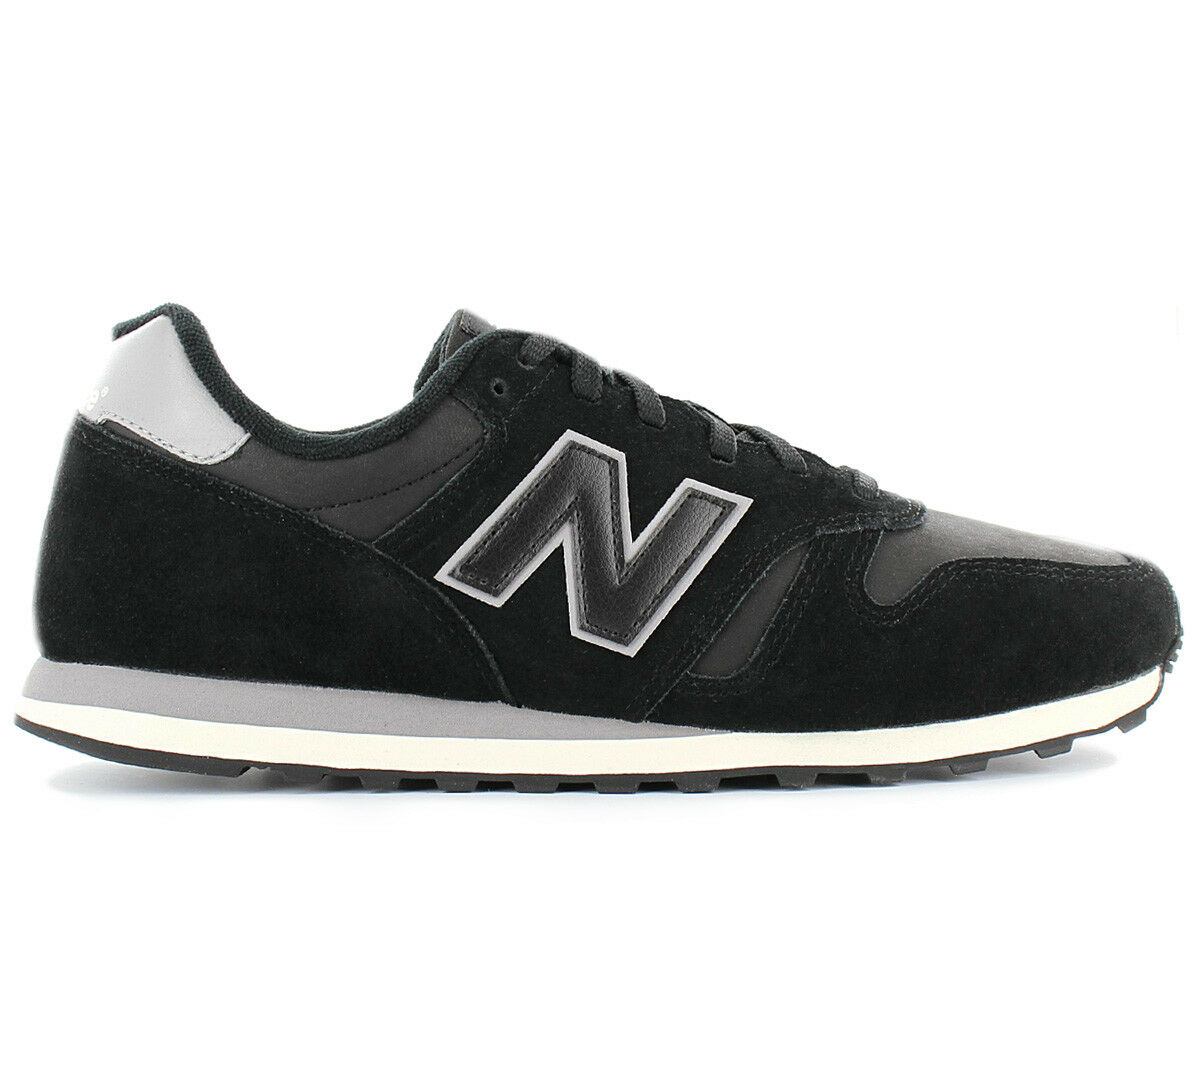 New Balance Classics 12.6oz373blg Men's Sneakers shoes Sneakers Black New